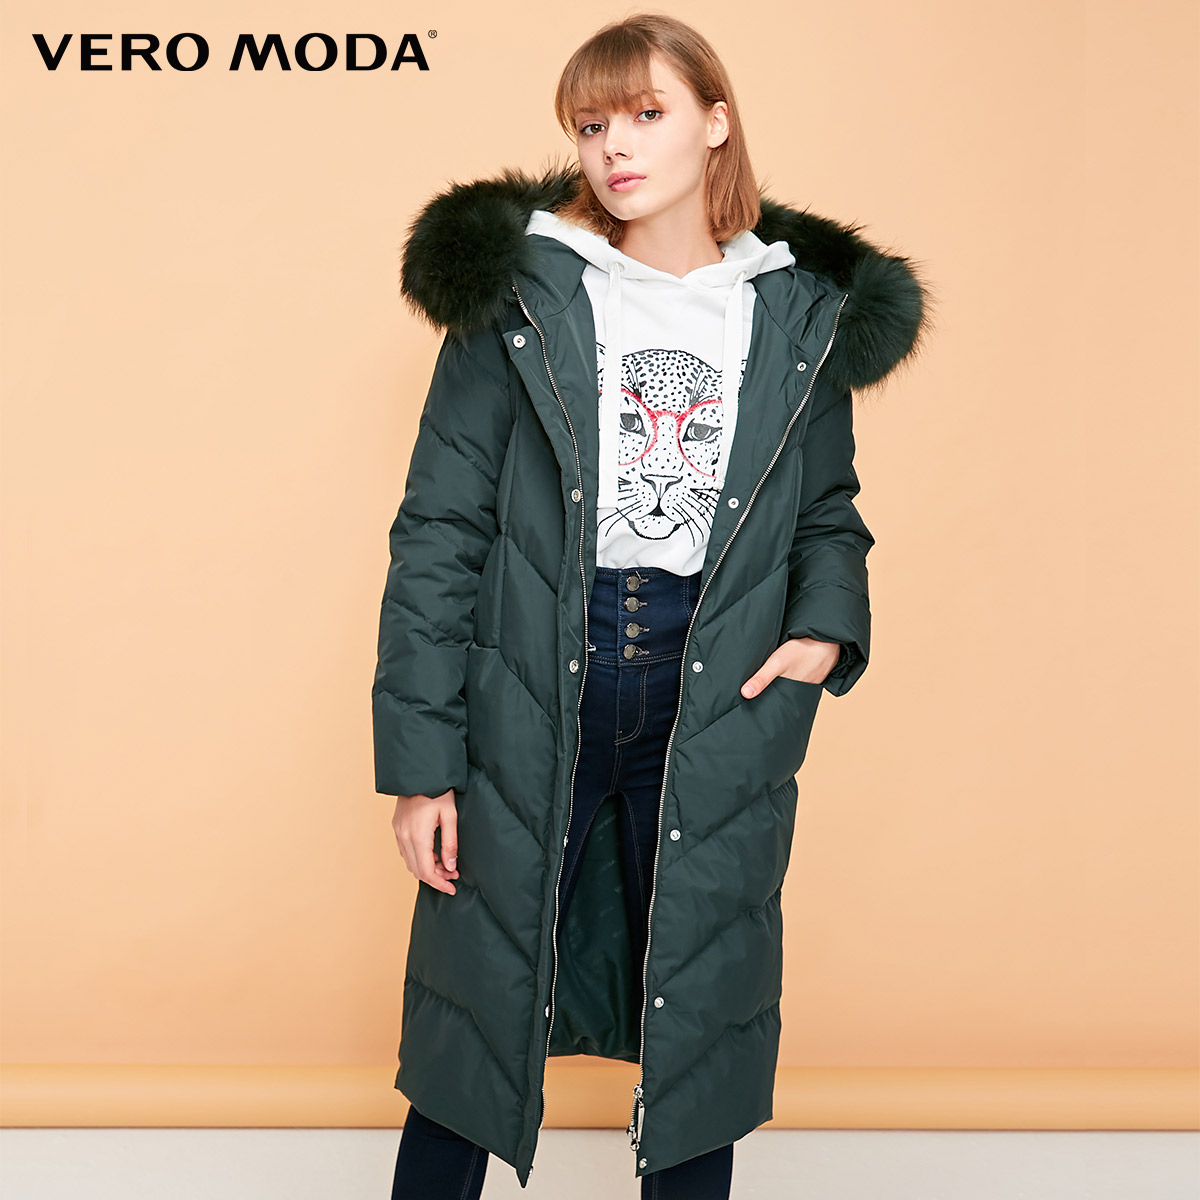 Vero Moda Women's Waist Hooded Raccoon Fur Plaid Long Down Jacket | 318412531